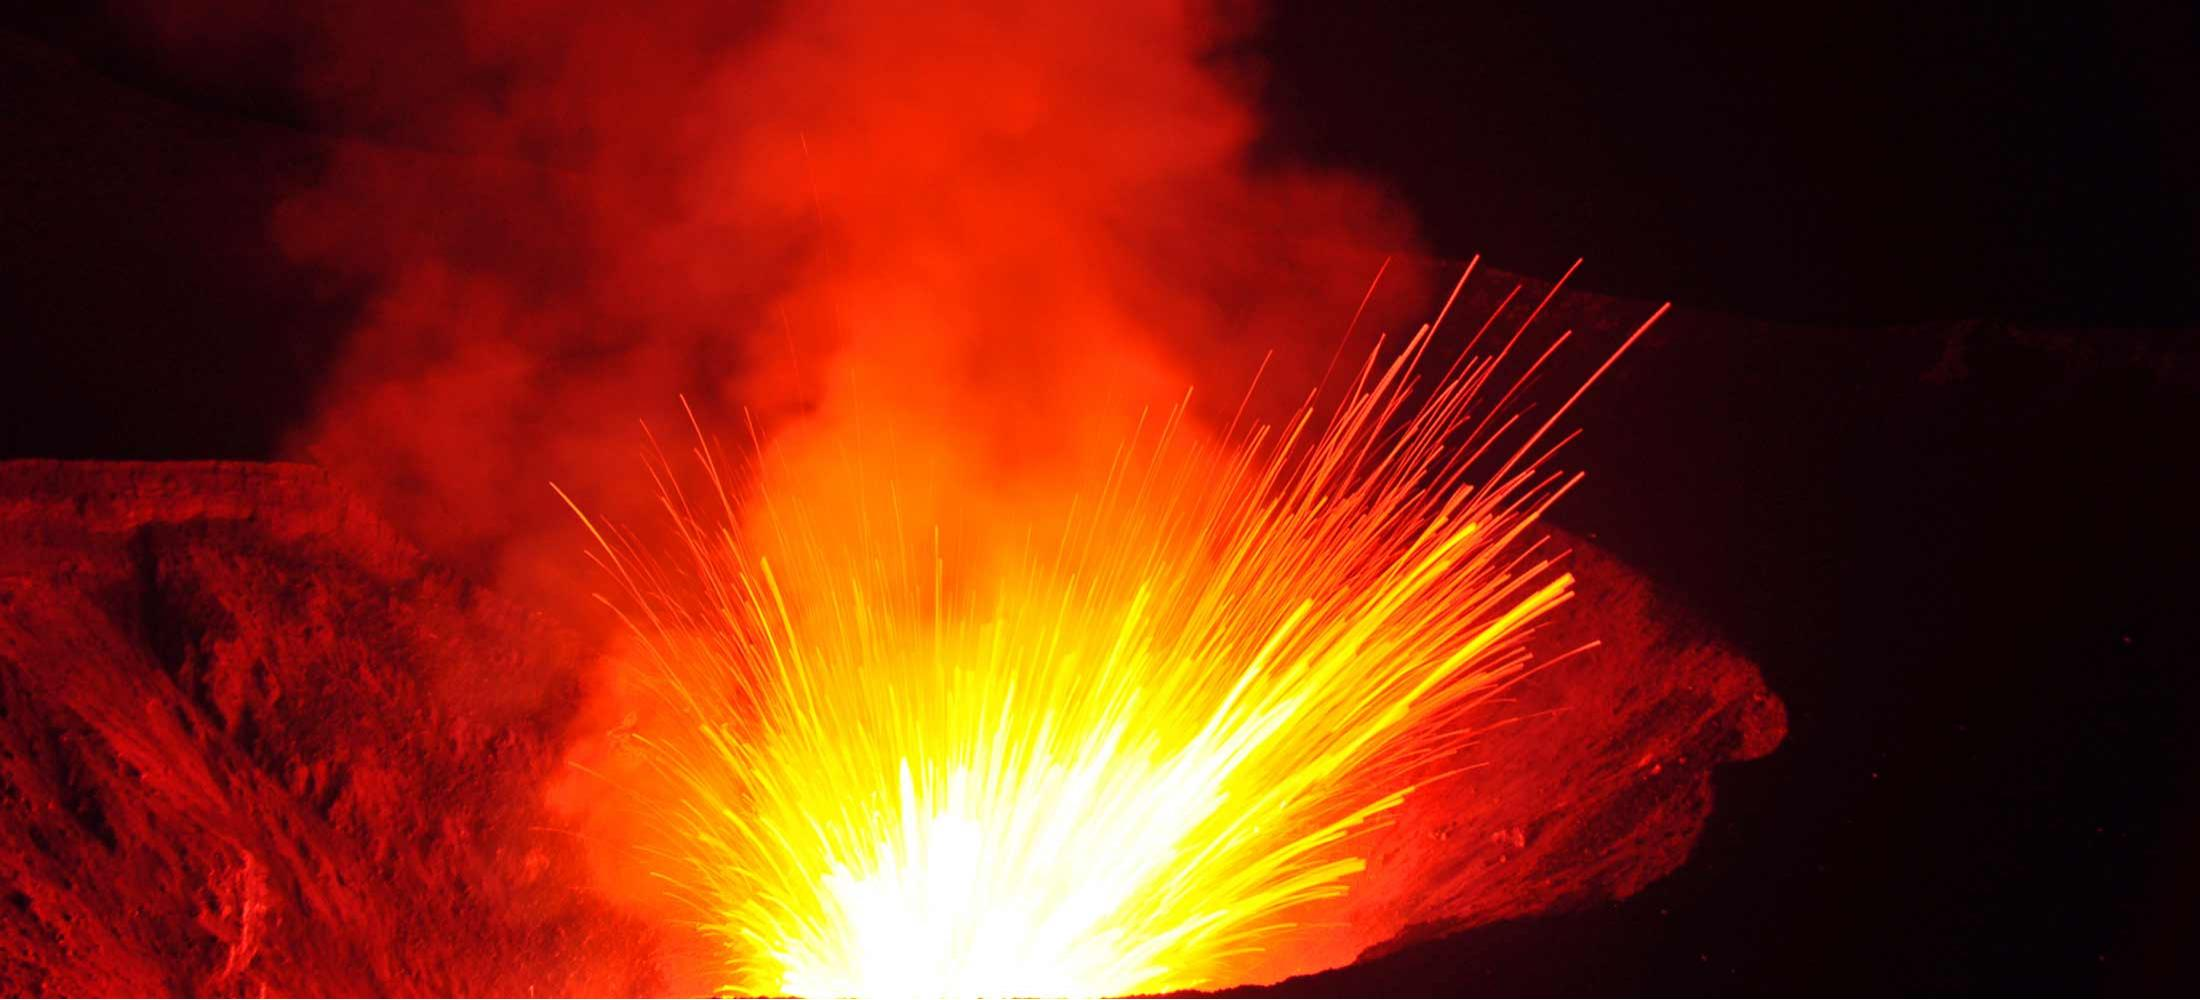 South Pacific Tours Vanuatu - Volcano Yasur Tanna